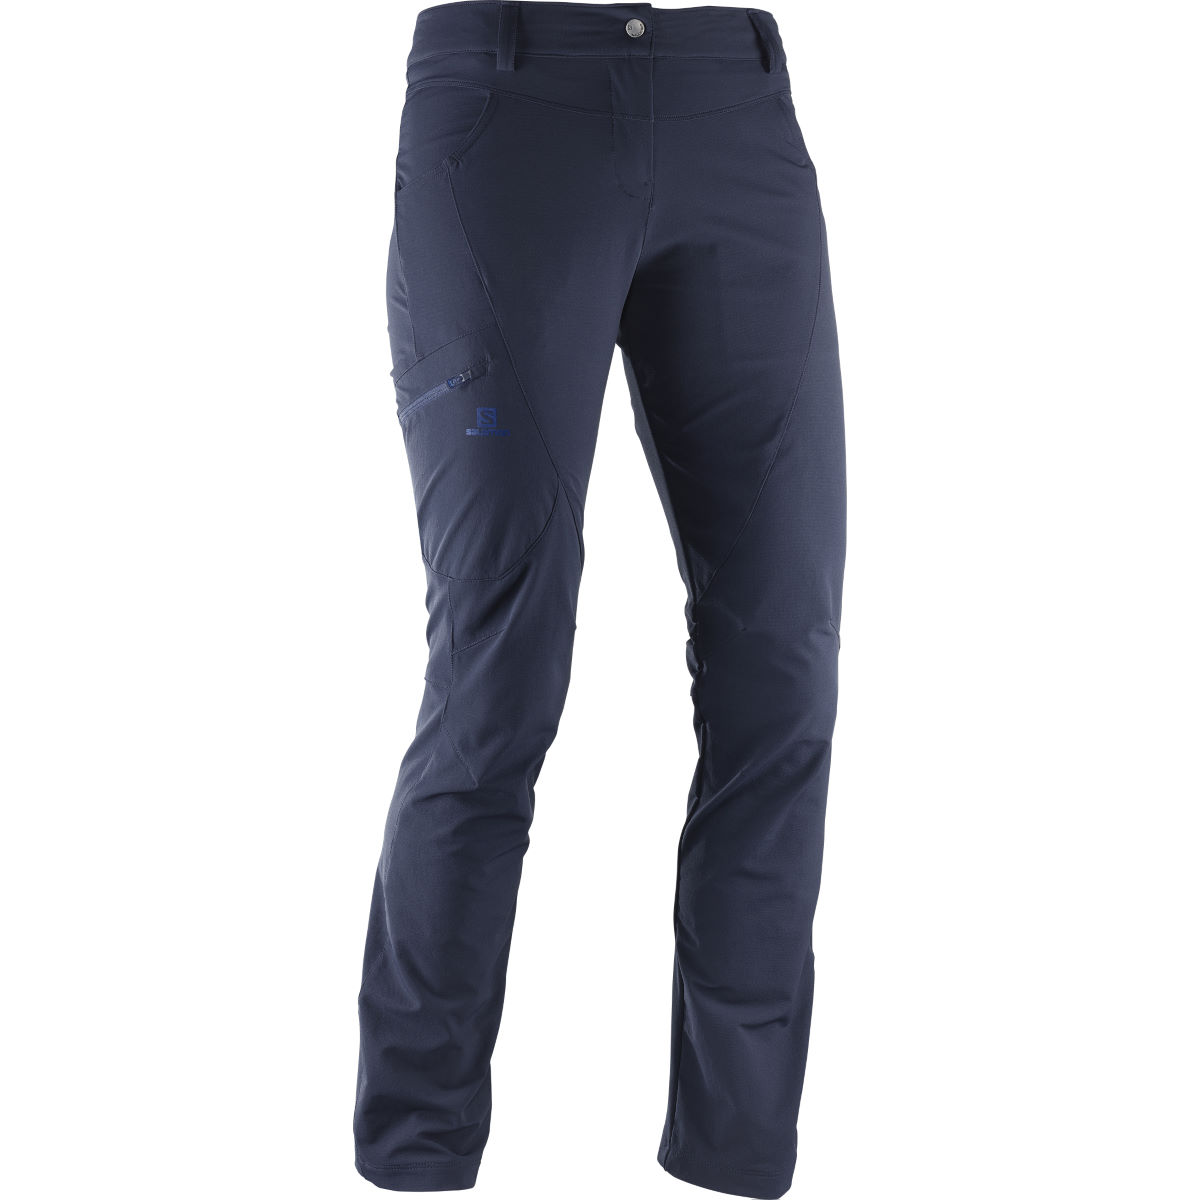 Pantalon Femme Salomon Wayfarer Utility - XL Night sky